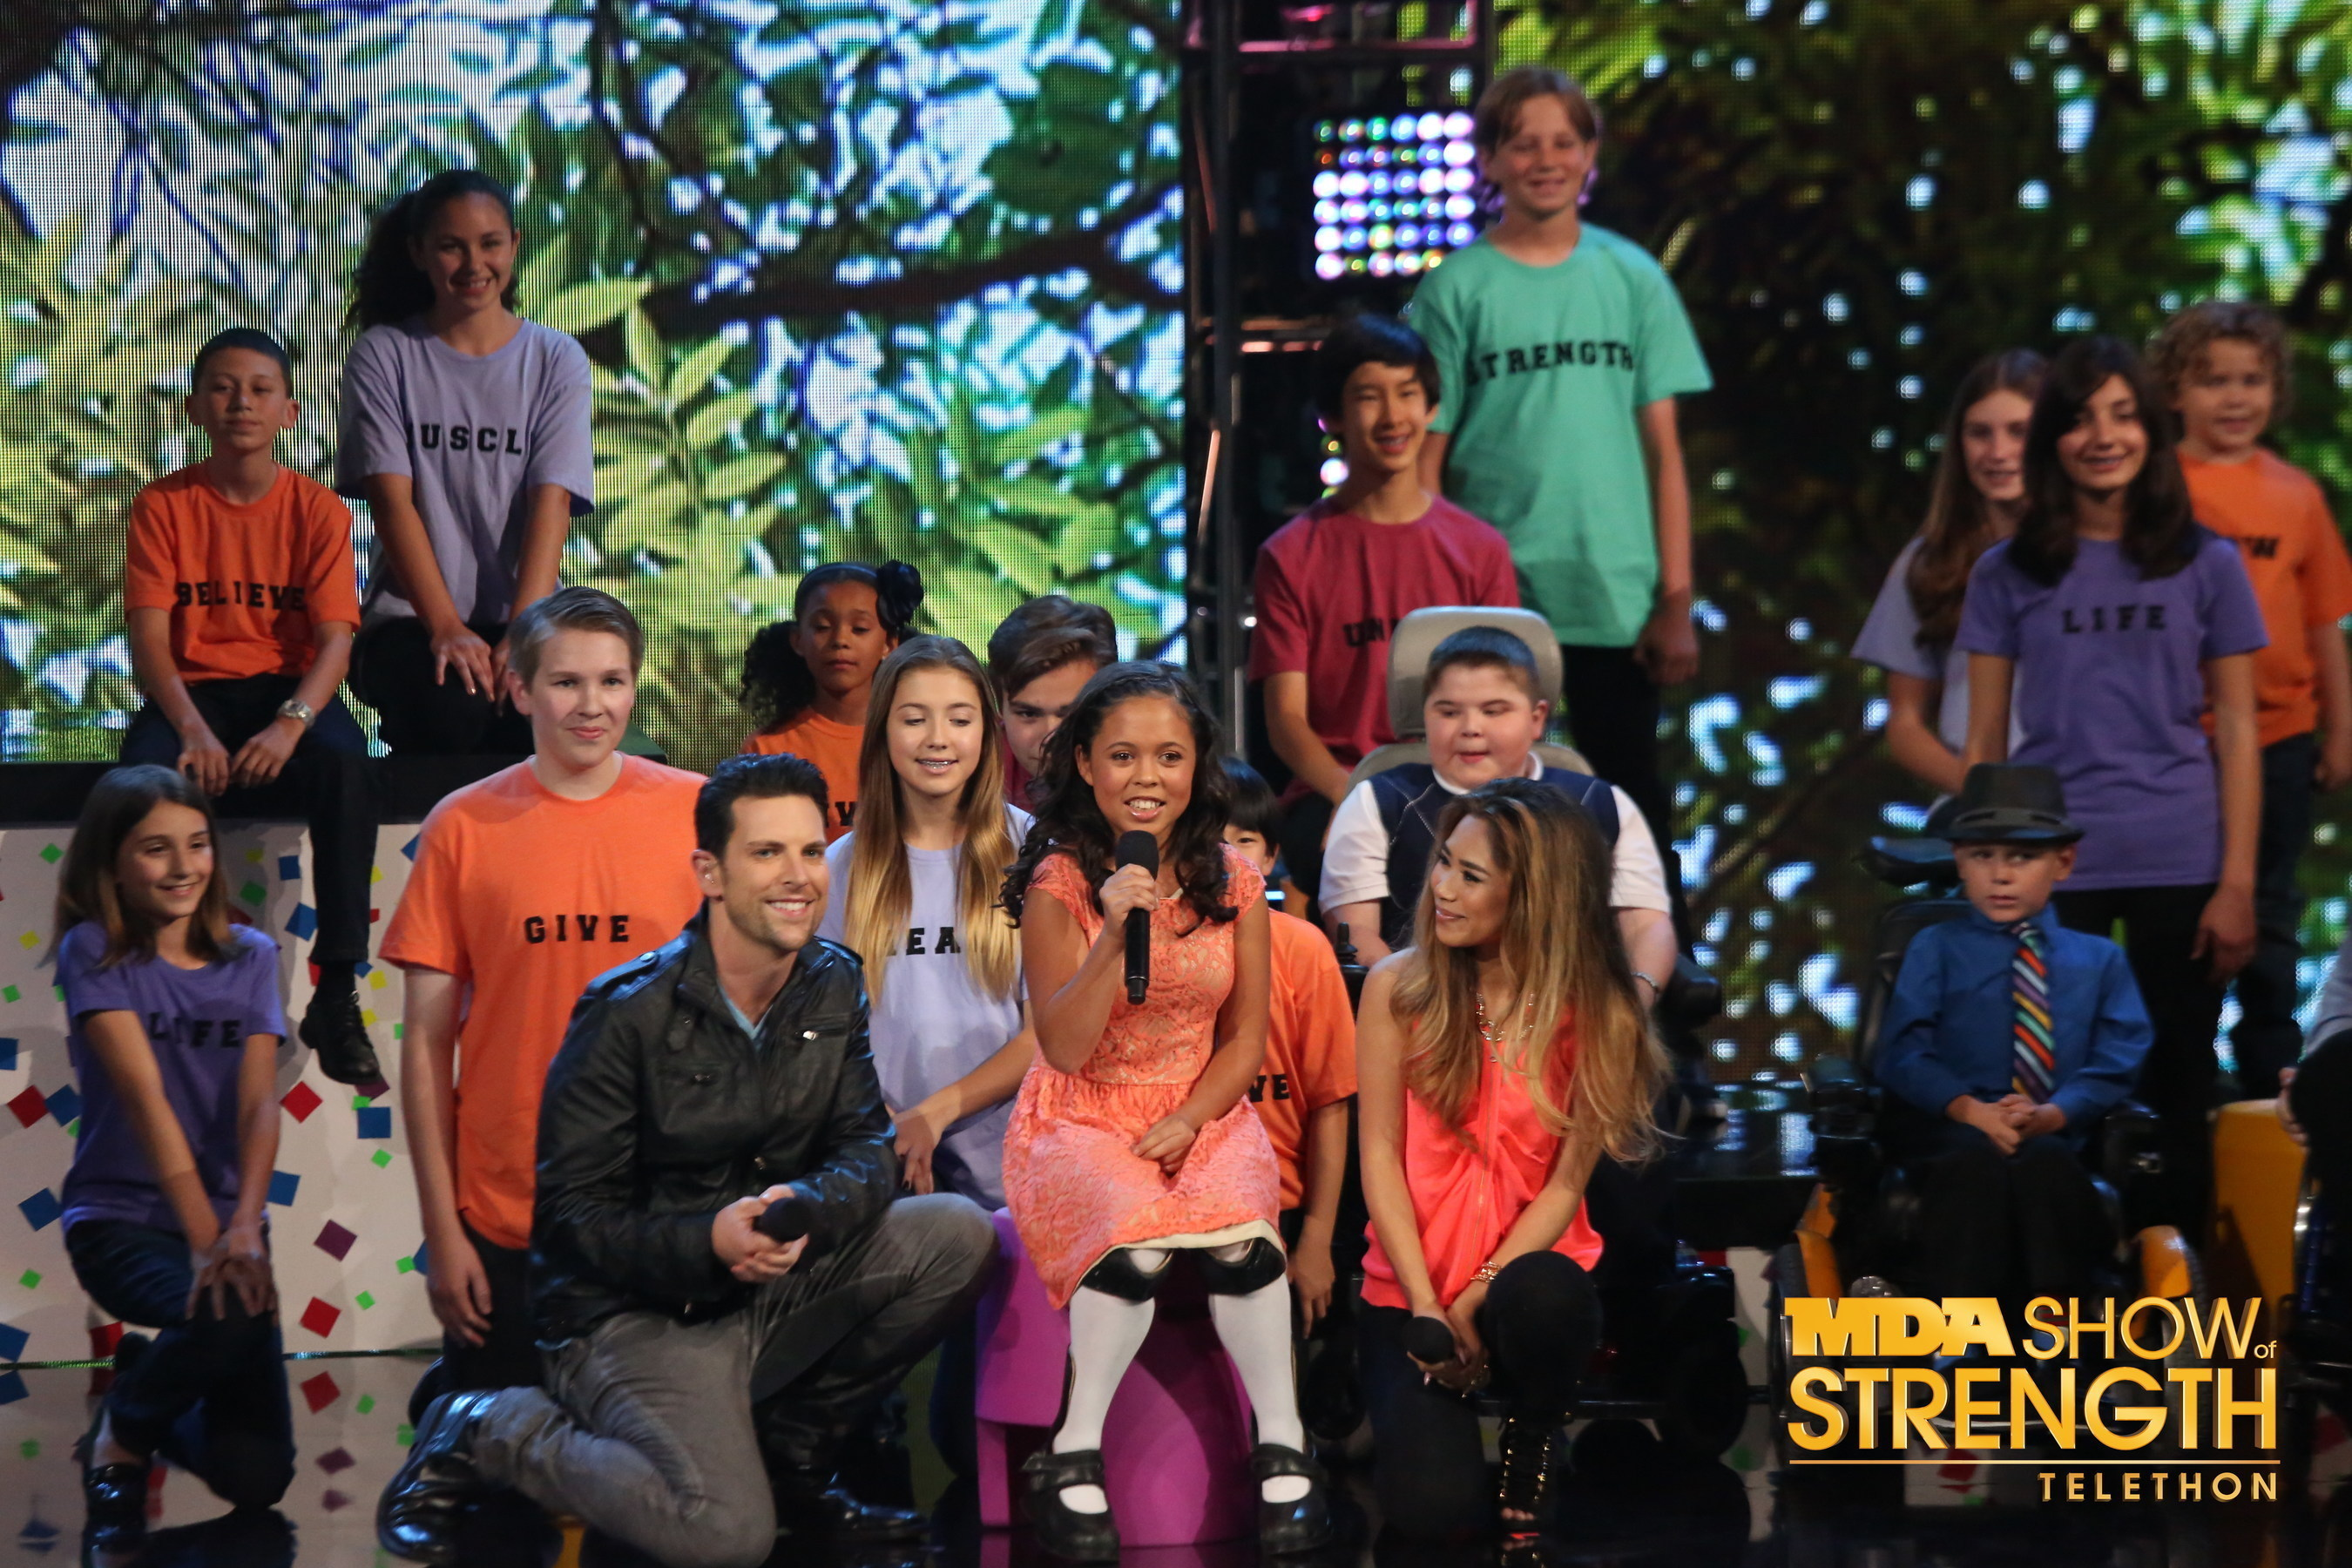 Chris Mann and Jessica Sanchez were among the stars who shared their talents on the 2013 MDA Show of Strength Telethon.